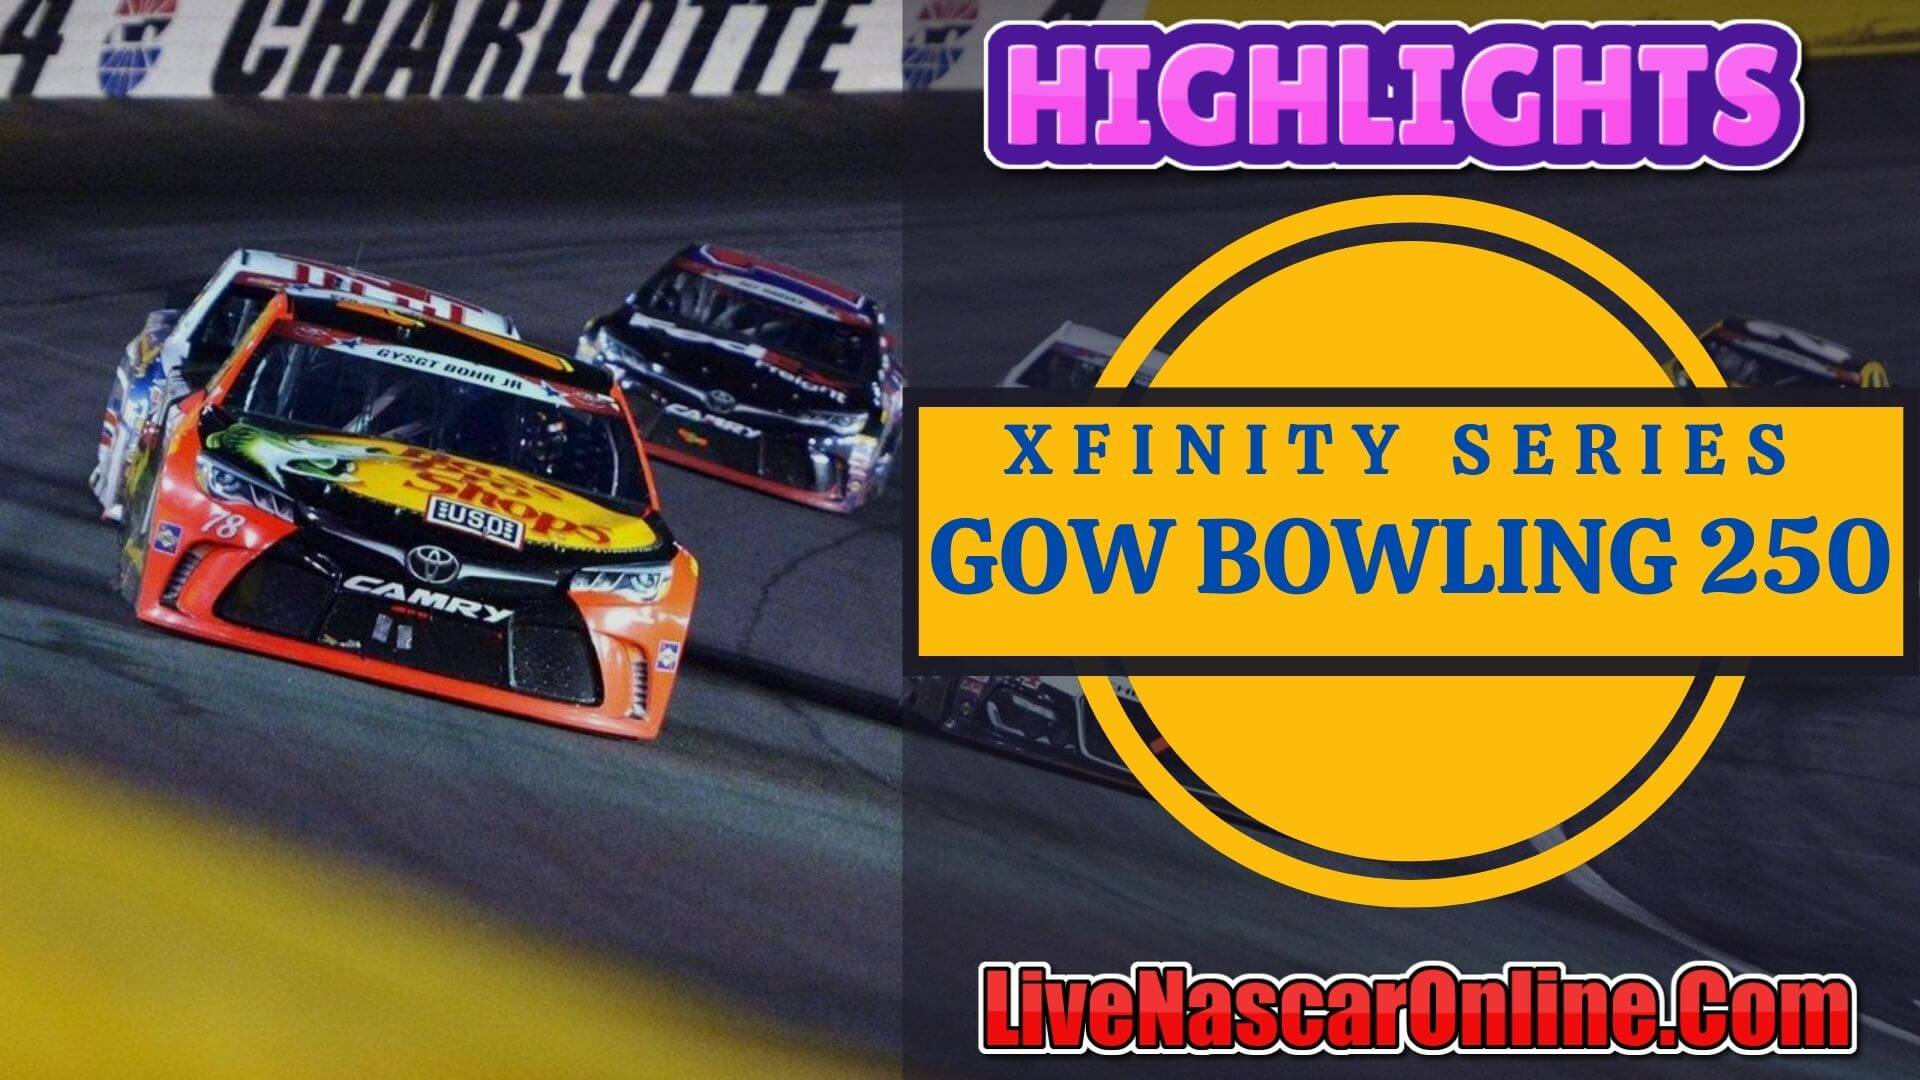 Go Bowling 250 Xfinity Series Highlights 2020